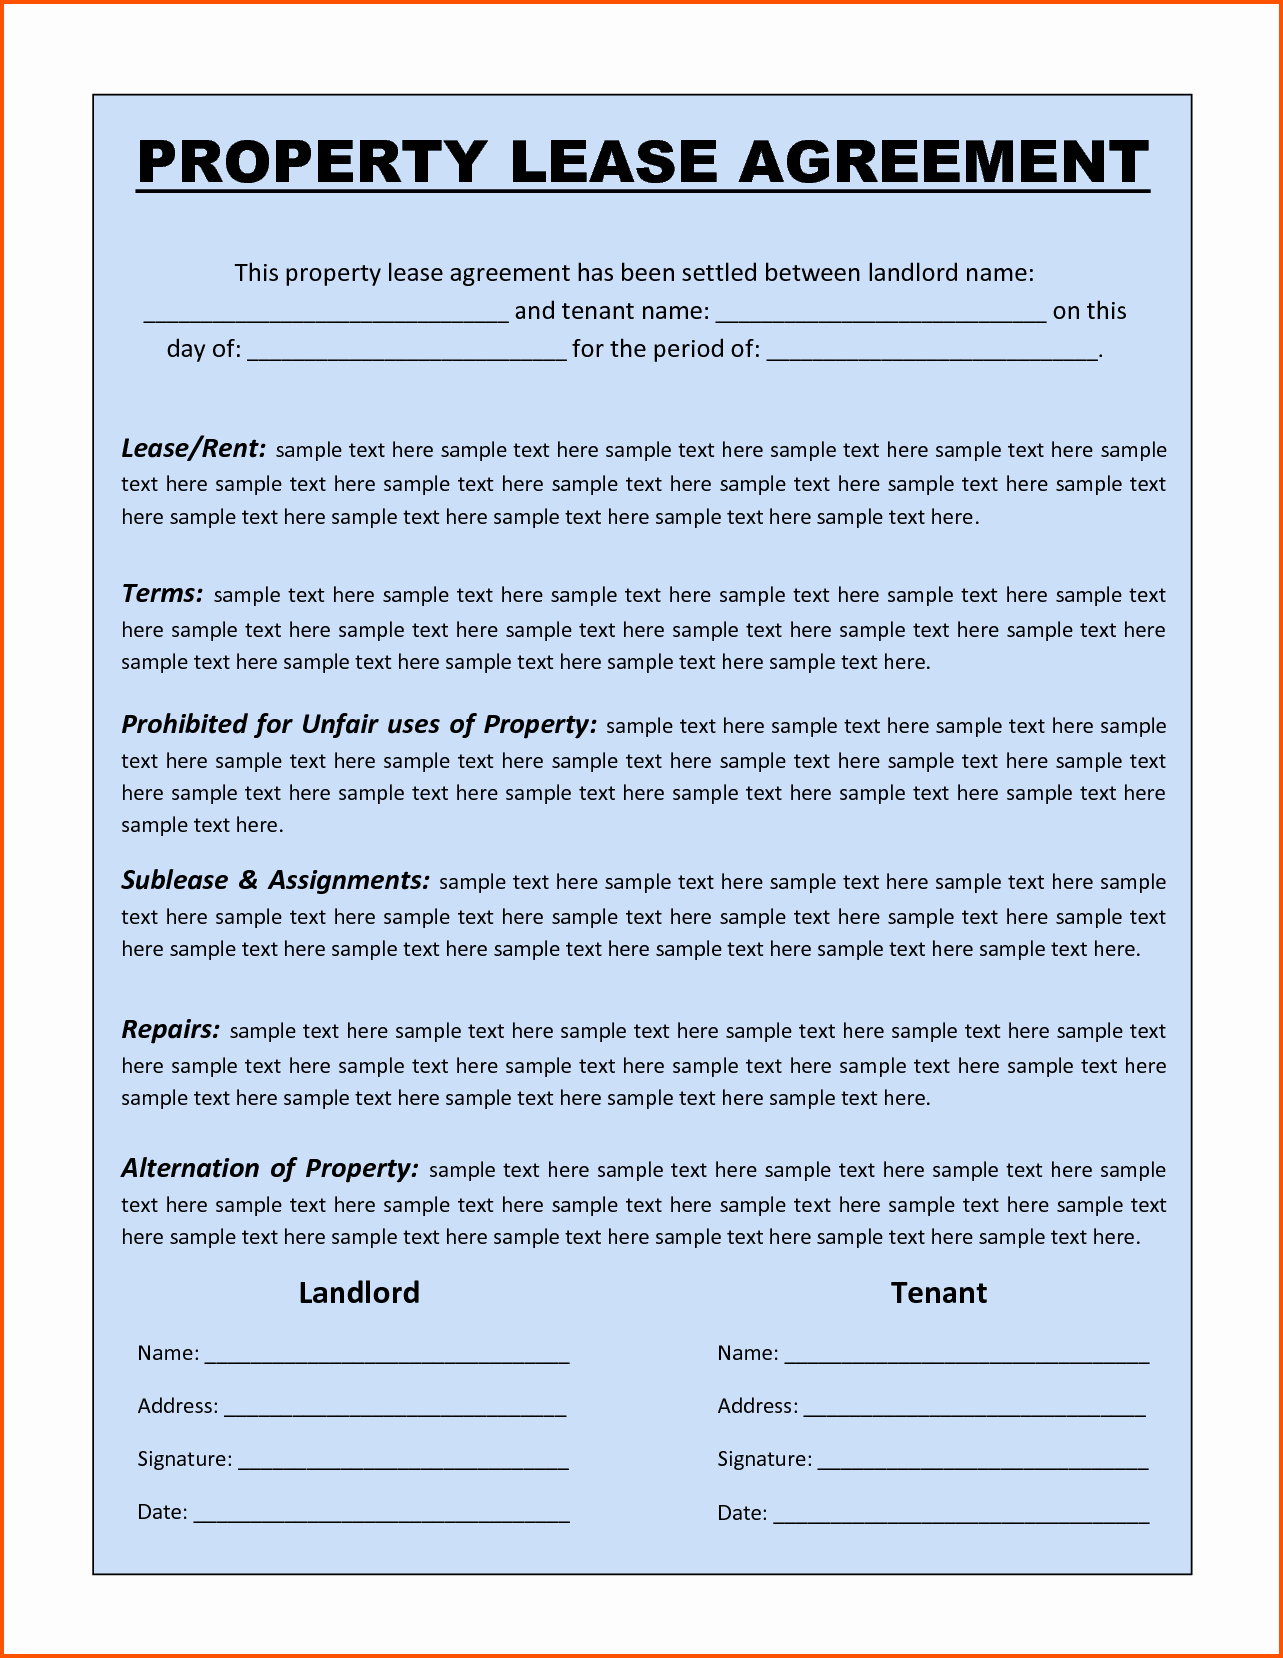 Renal Agreement Lease Agreement Template